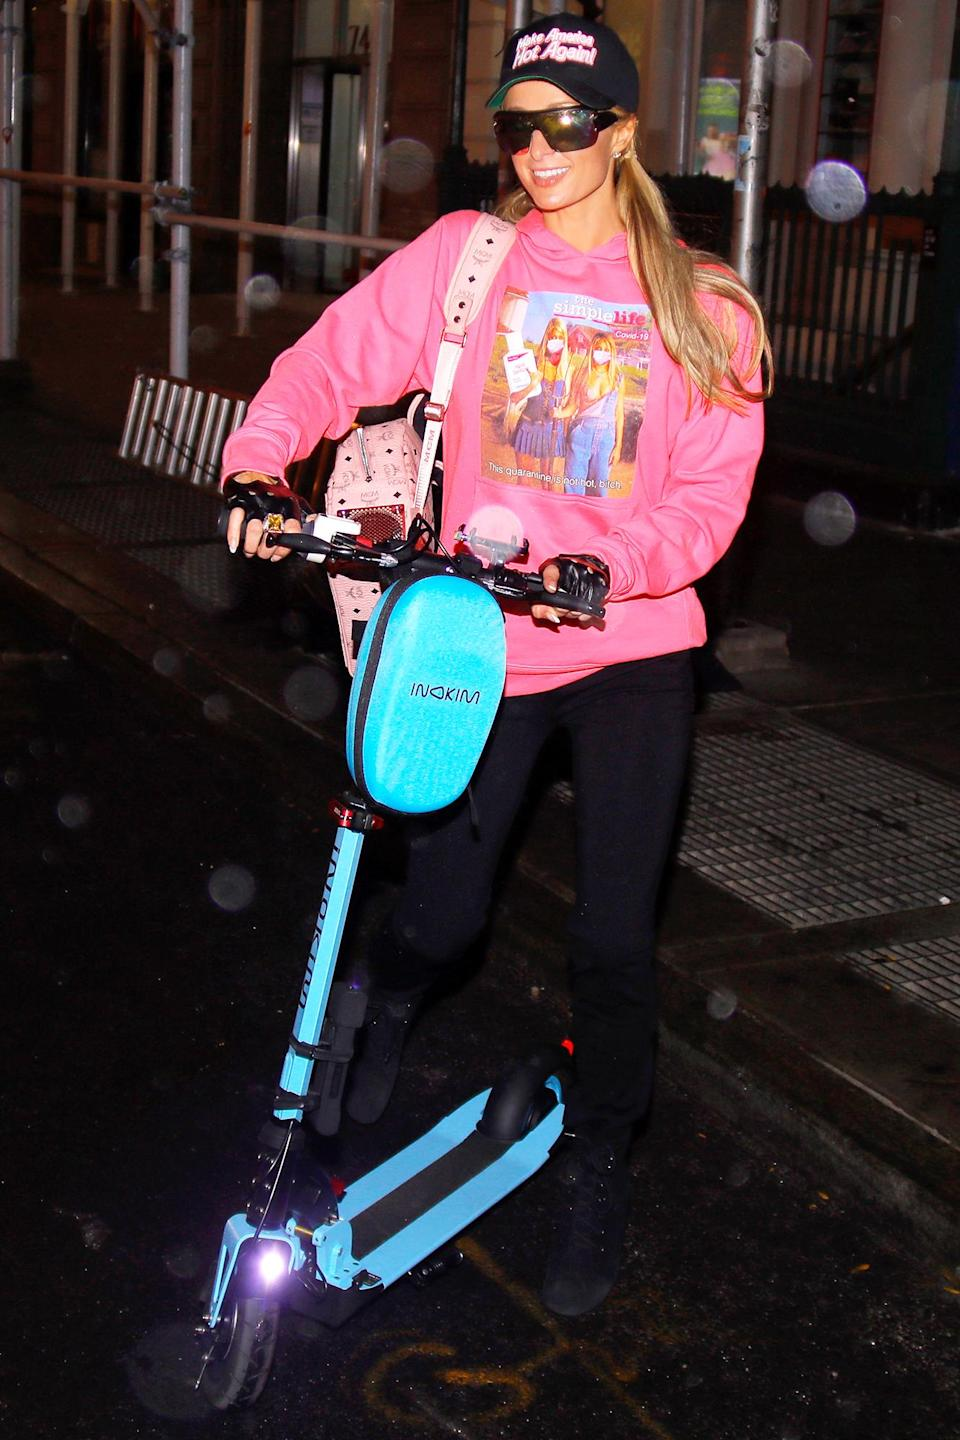 <p>Paris Hilton wore a 'Make America Hot again' hat and a Simple Life sweater while riding a scooter in New York City. </p>